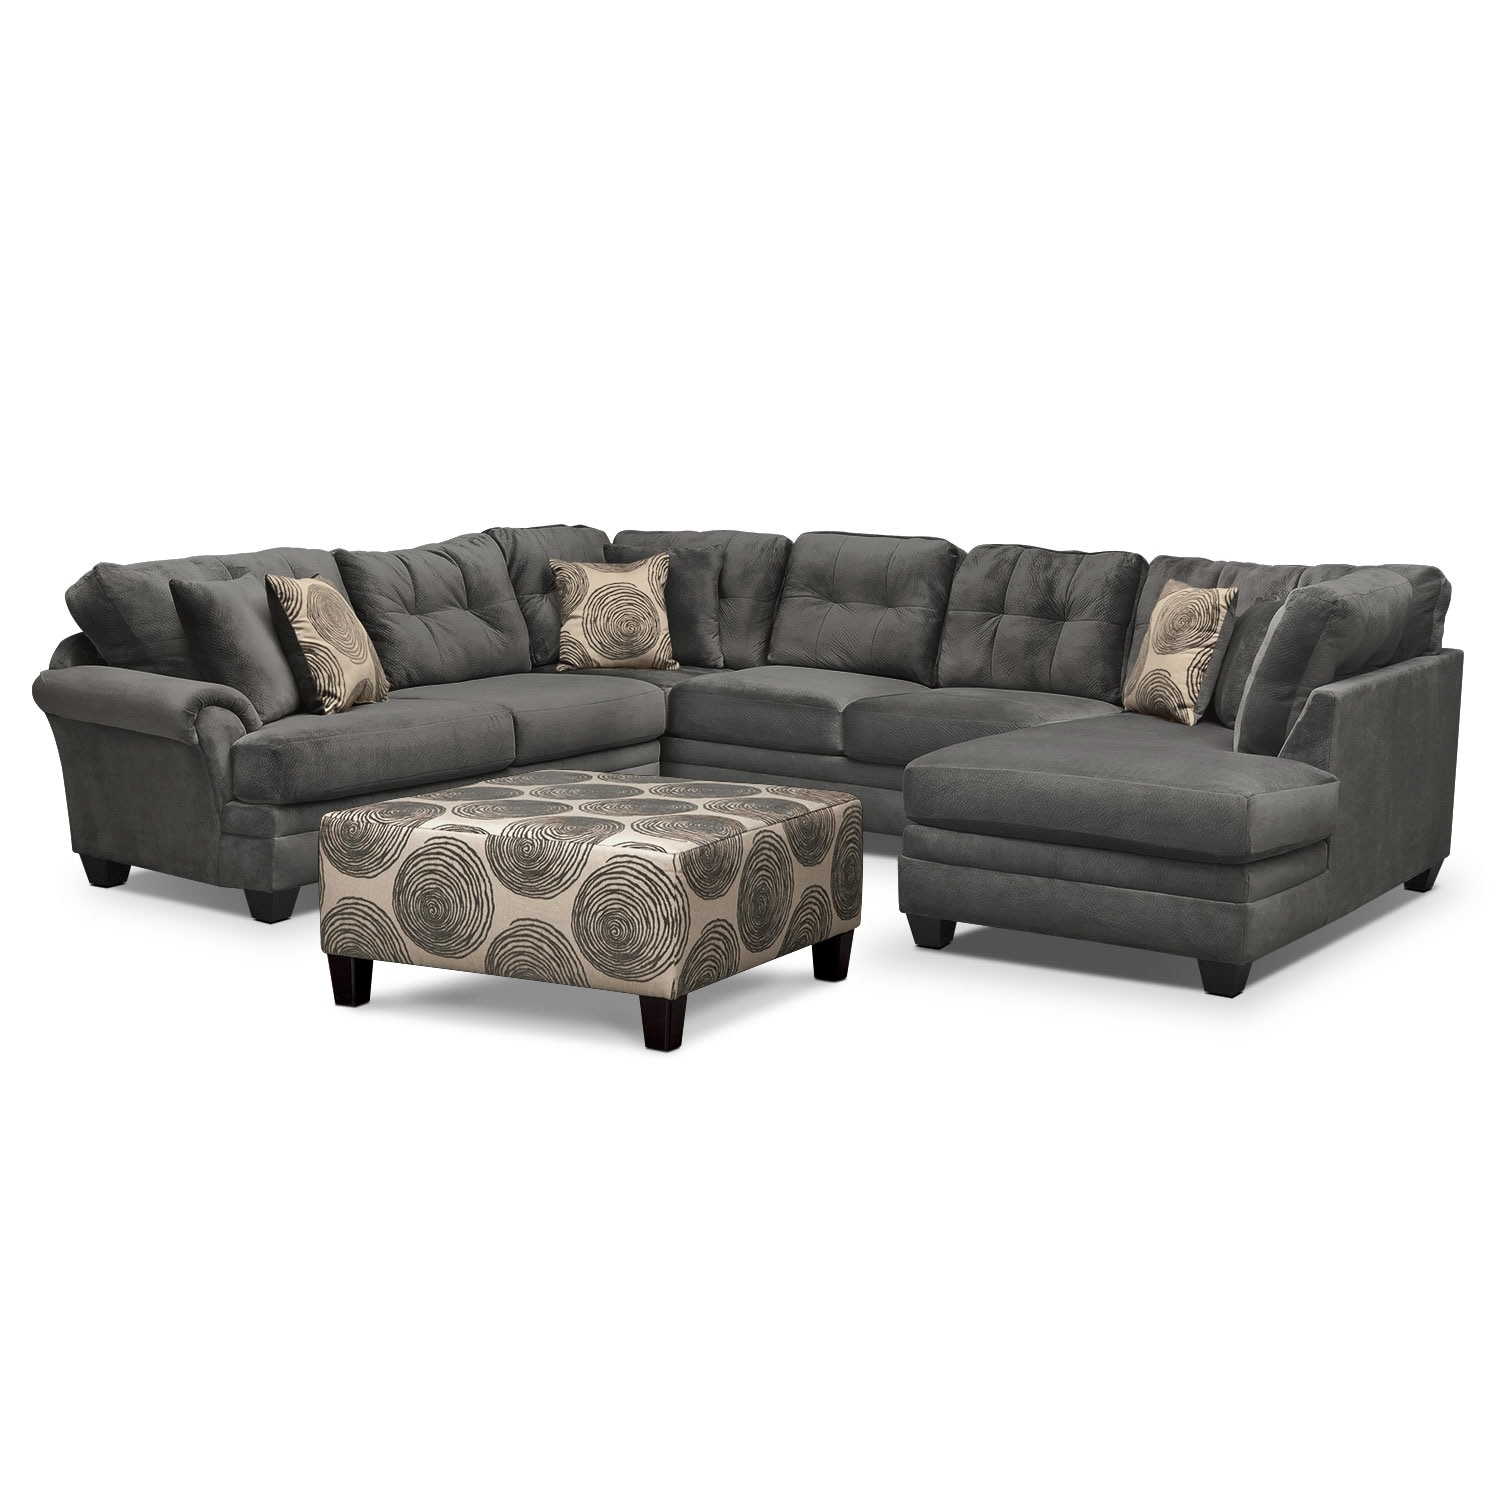 The Cordelle Sectional Collection - Gray | Value City Furniture and ...